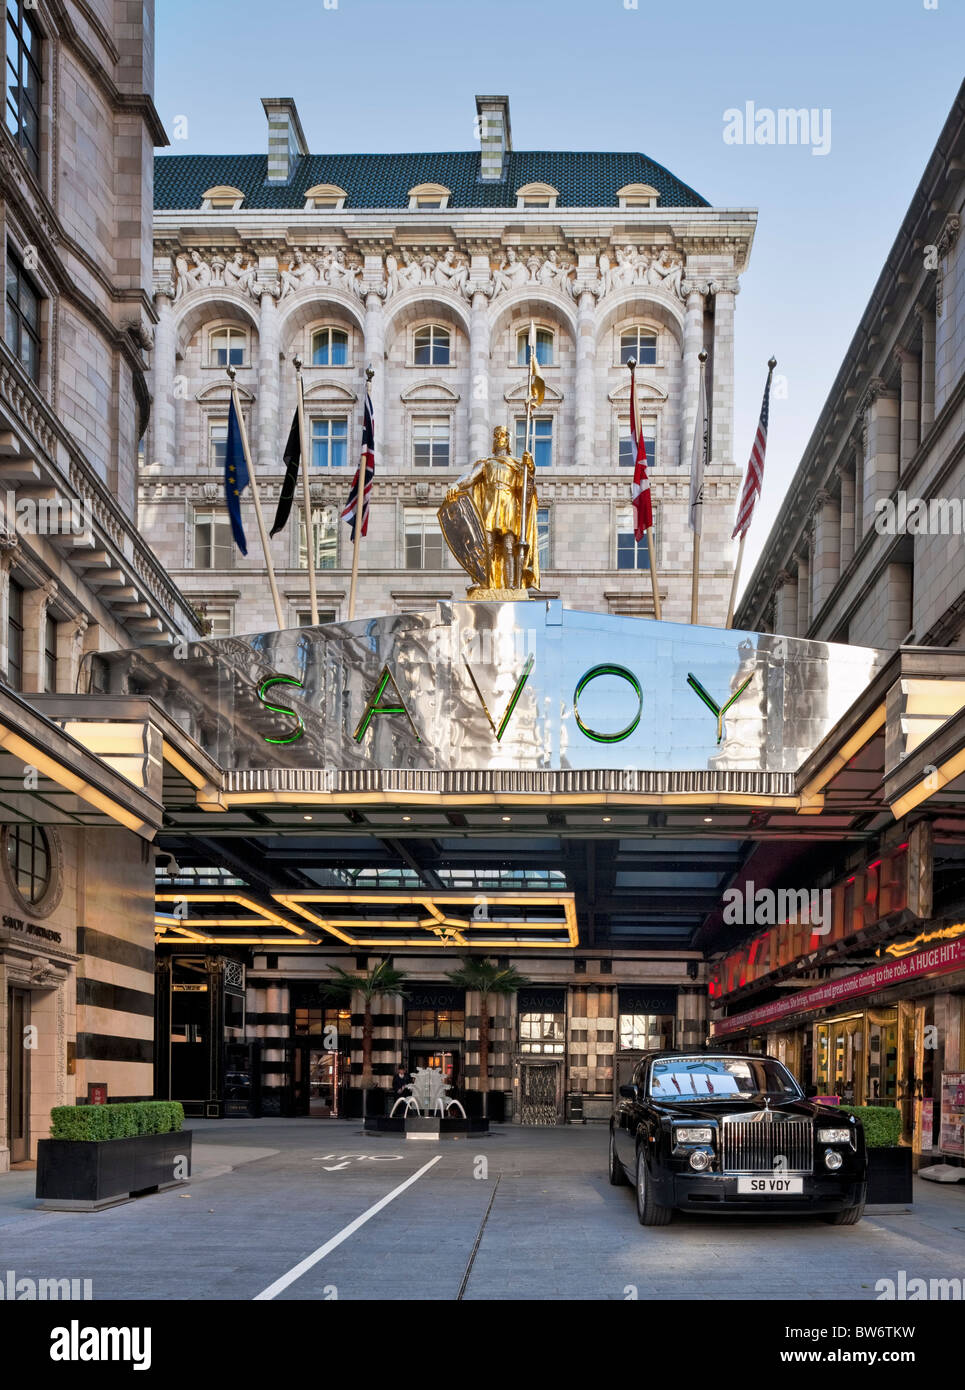 The refurbished Savoy Hotel in London - reopened in October 2010. - Stock Image